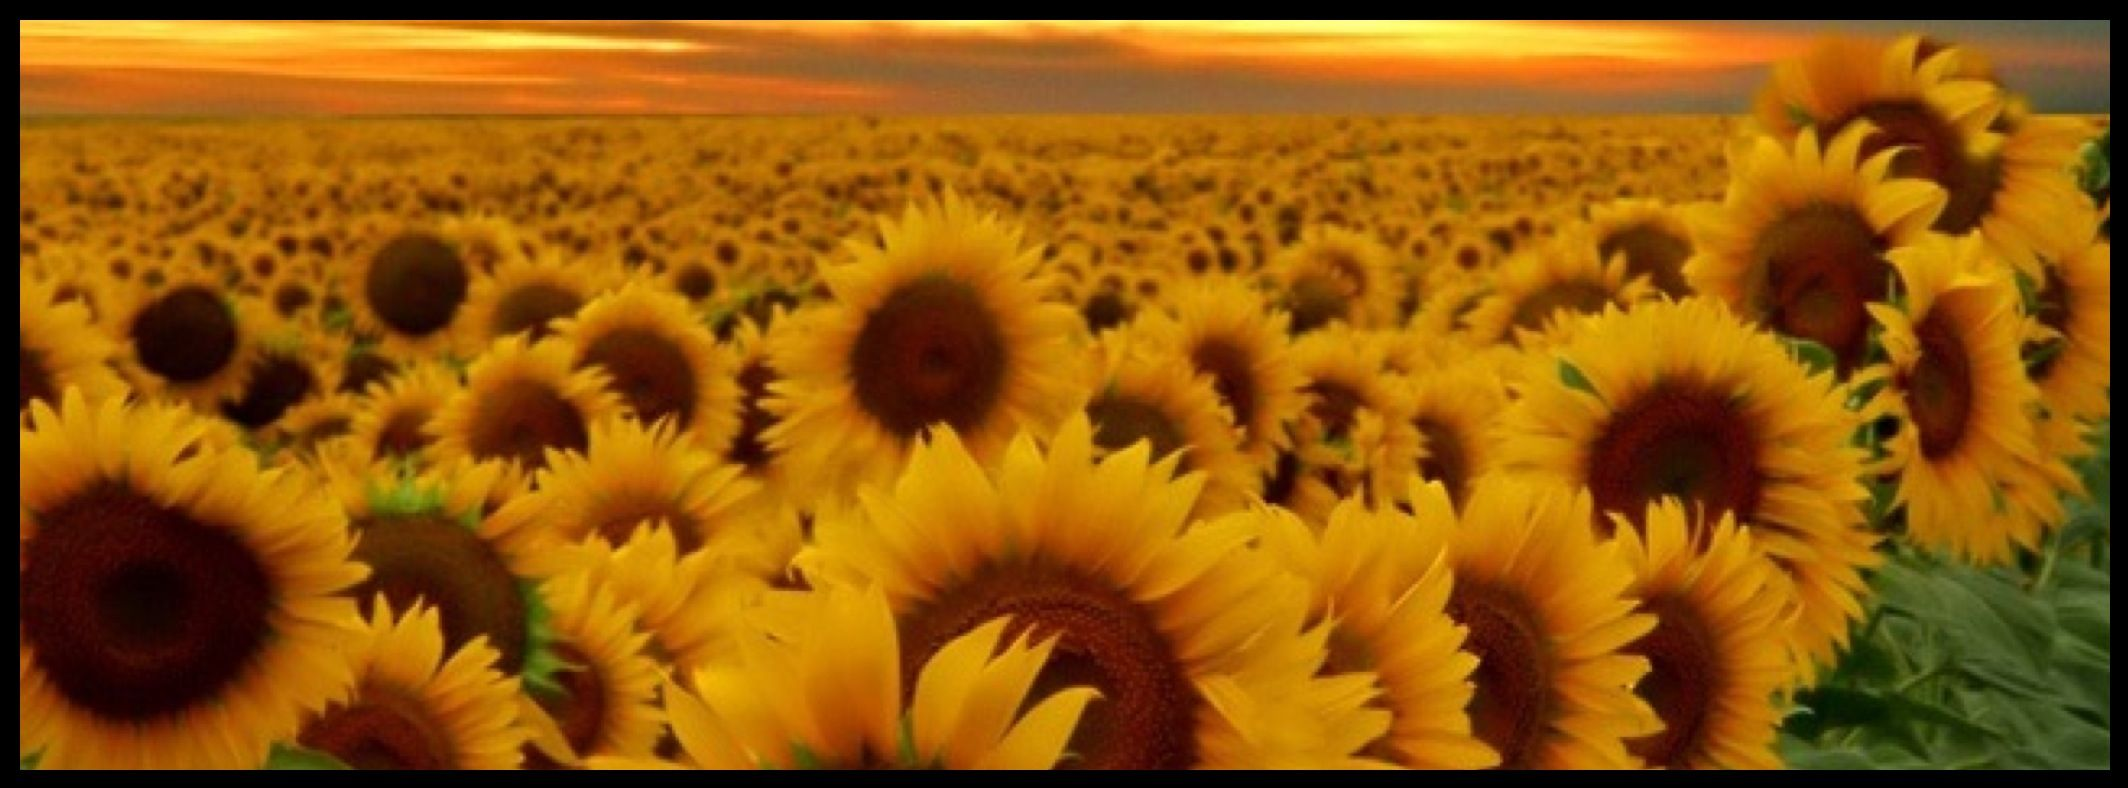 Sunflowers Facebook Cover Photo Facebook Cover Photos Fb Cover Photos Twitter Cover Photo